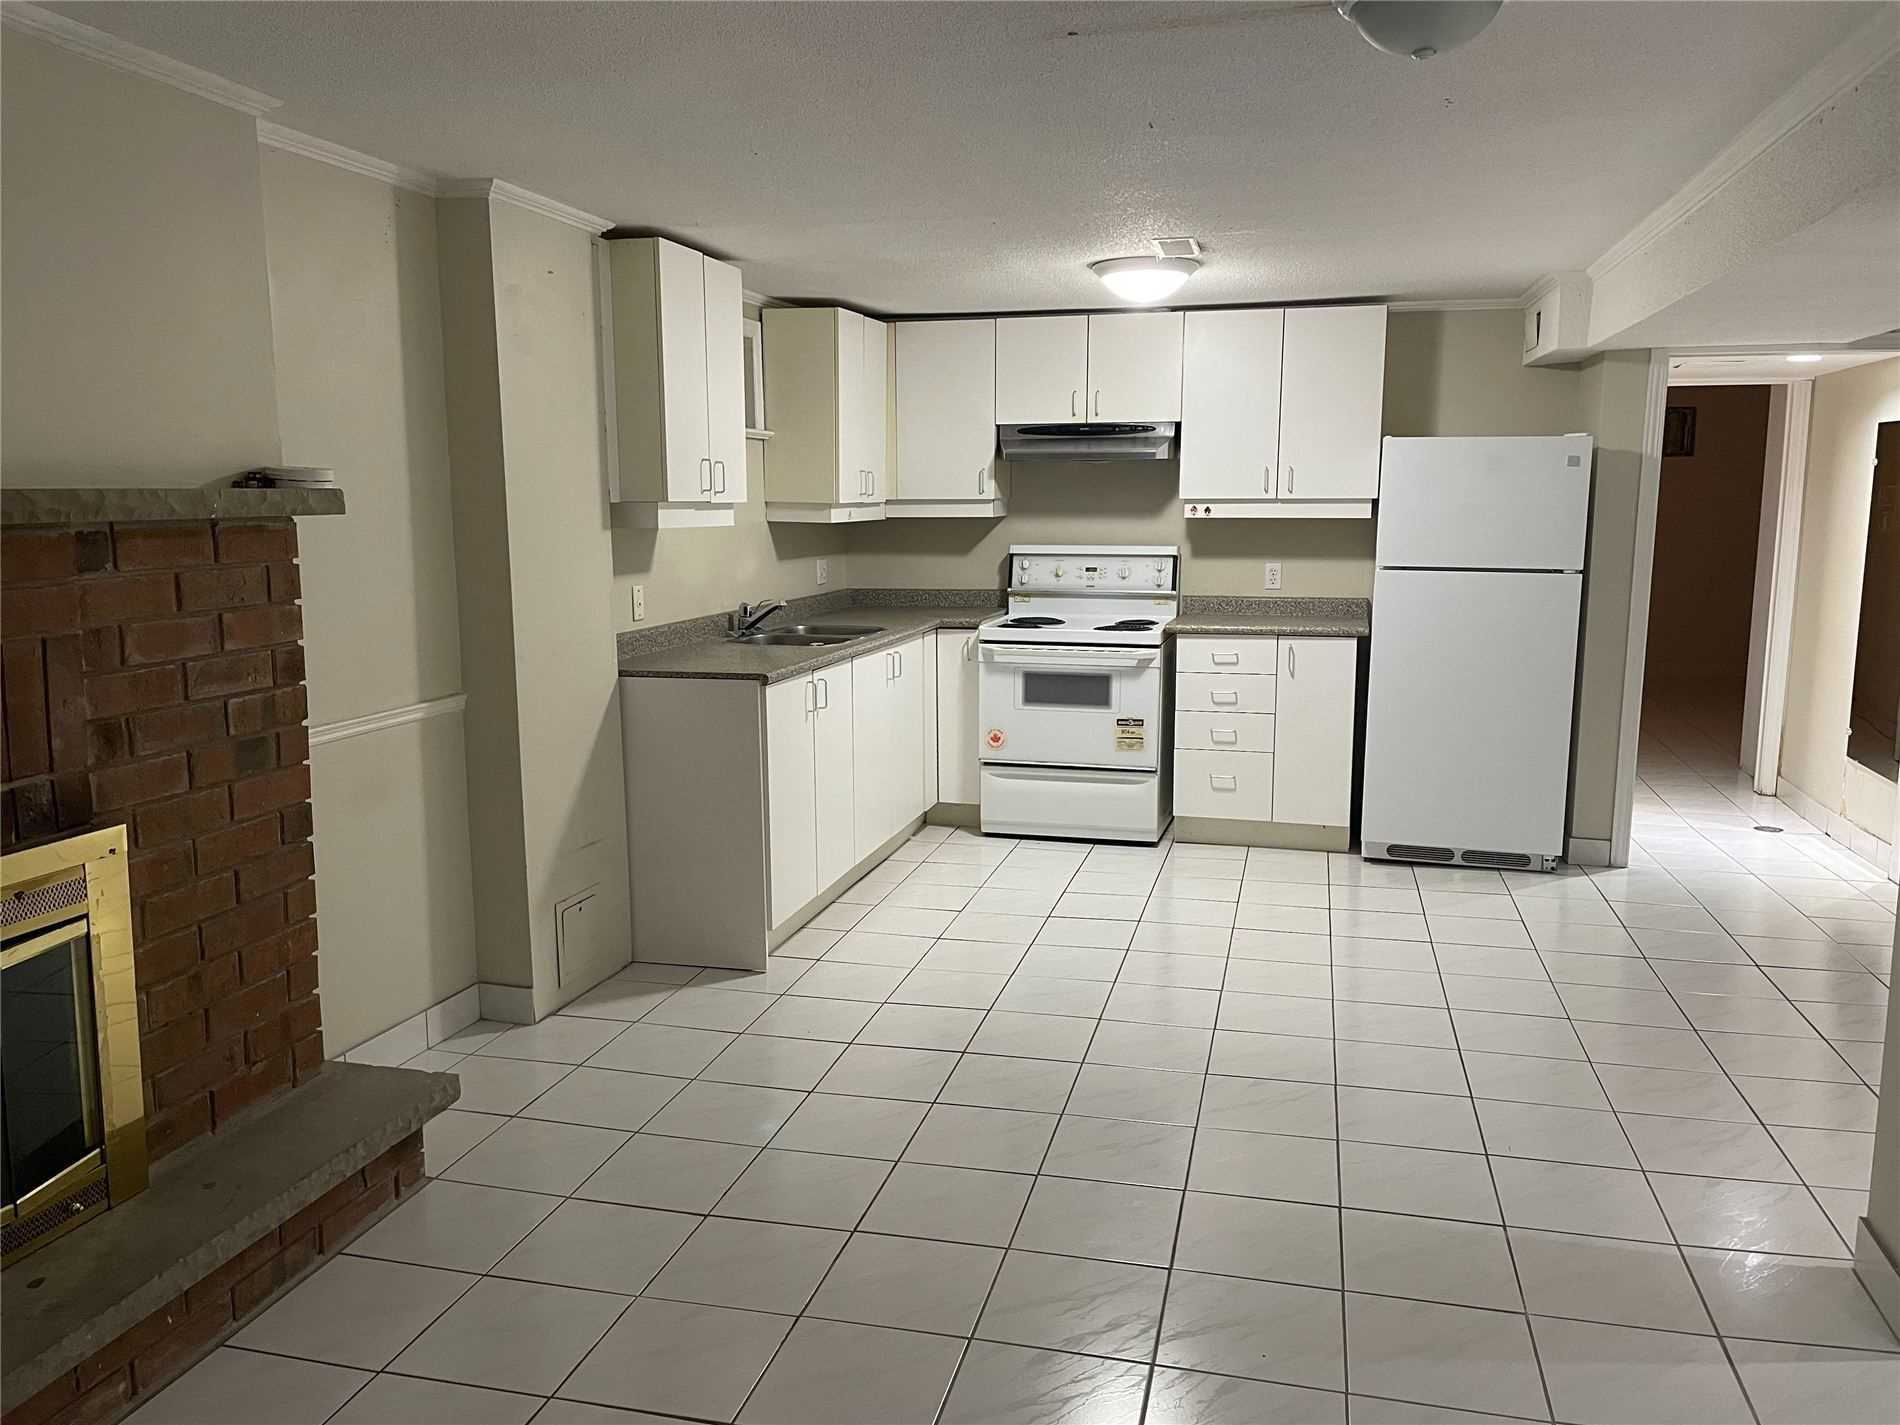 Image 4 of 5 showing inside of 1 Bedroom Detached 2-Storey for Lease at 180 Don Head Village Blvd, Richmond Hill L4C7R5